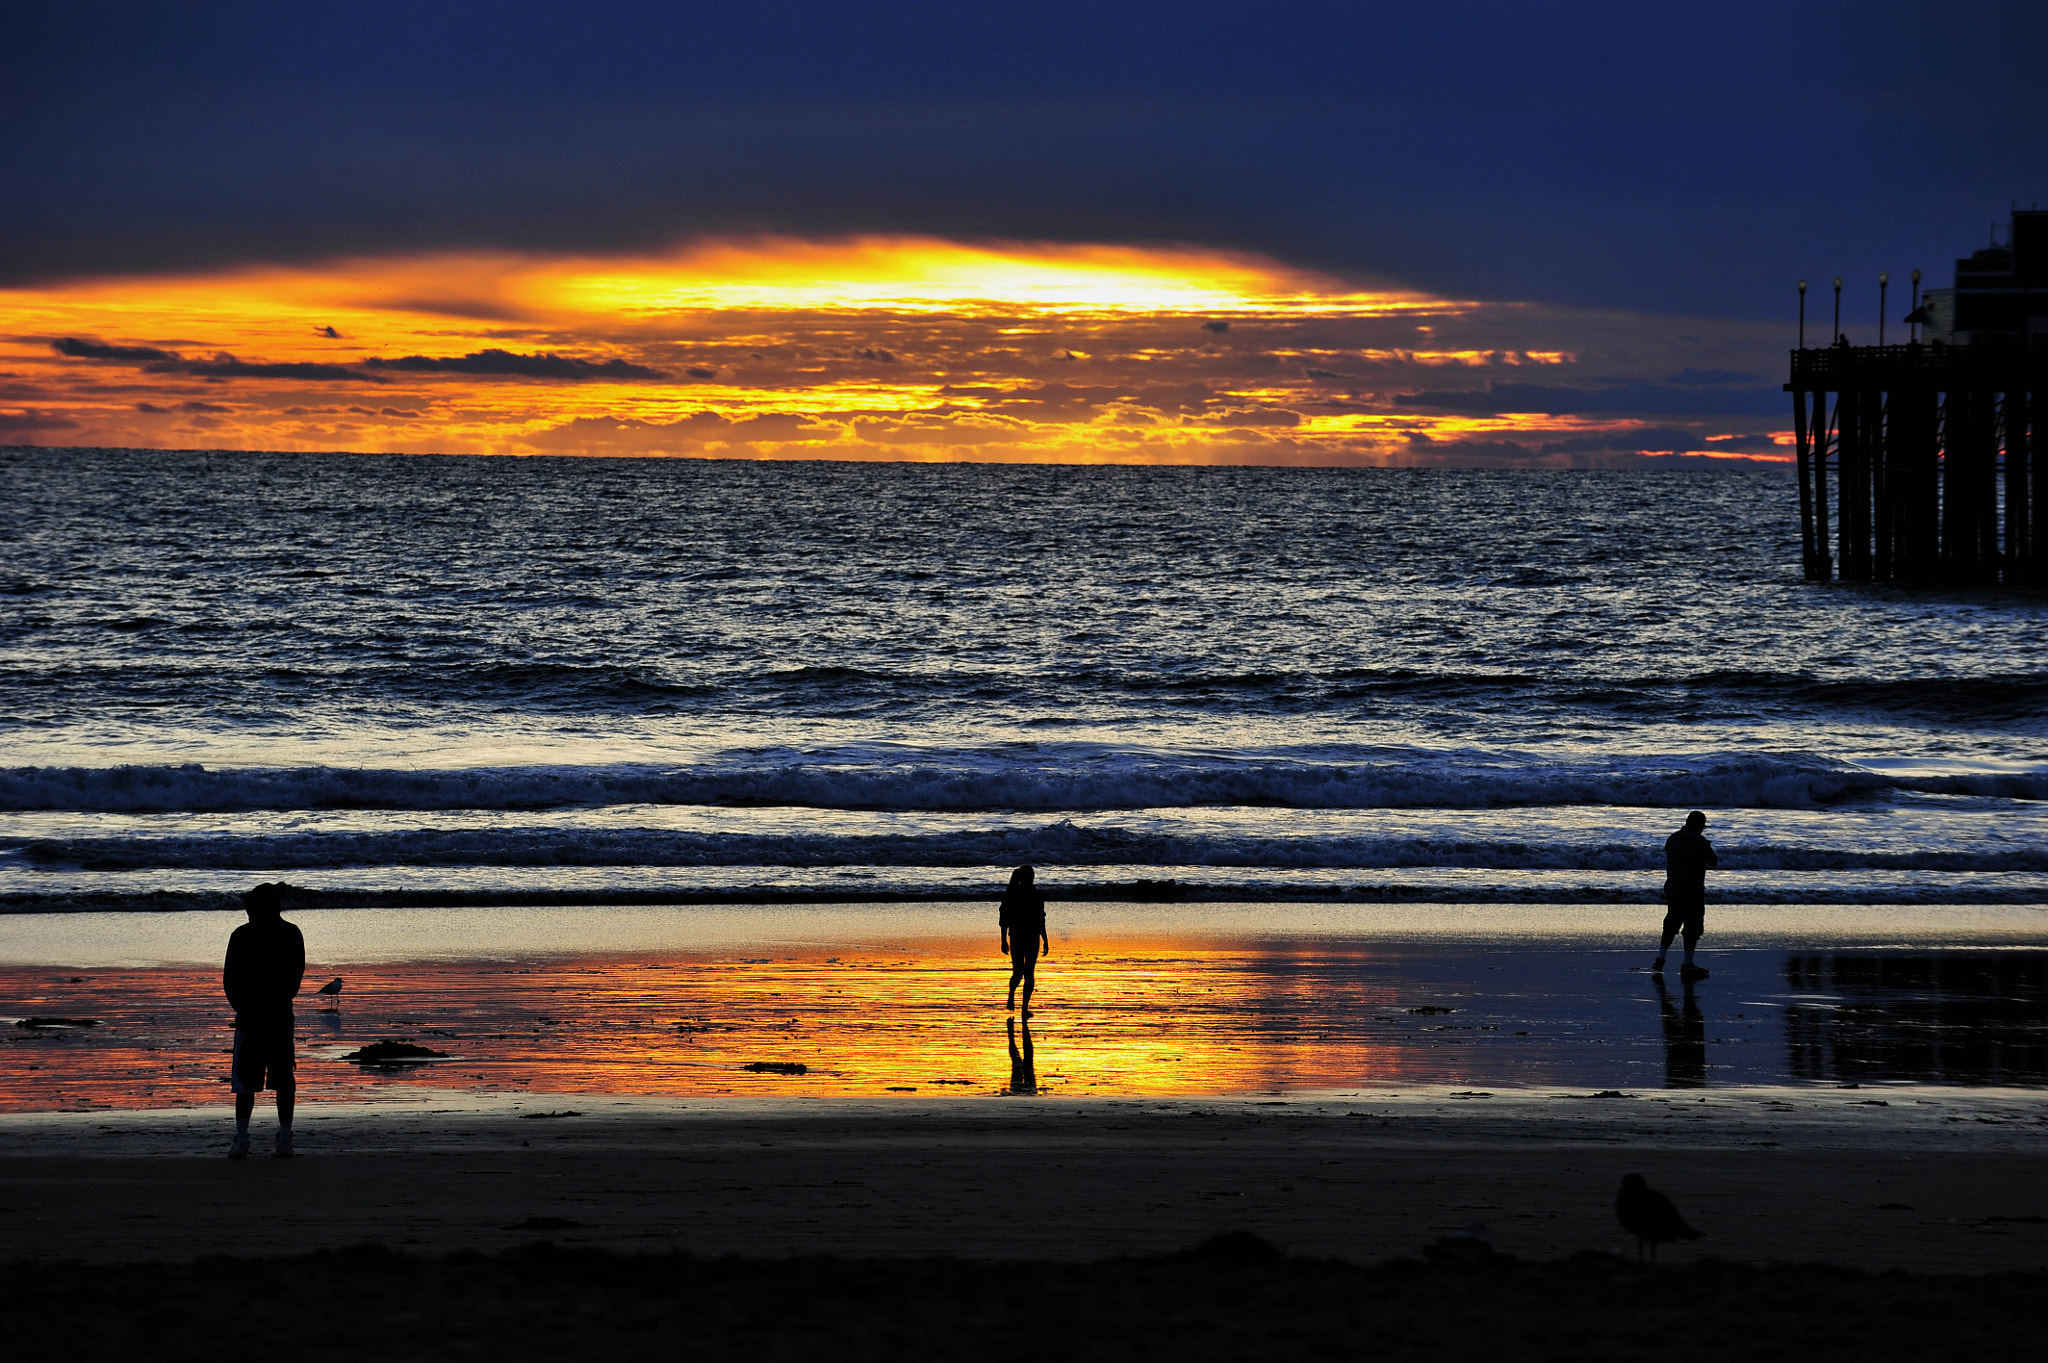 Photograph Three People on the Beach at Sunset in Oceanside. by Rich Cruse on 500px